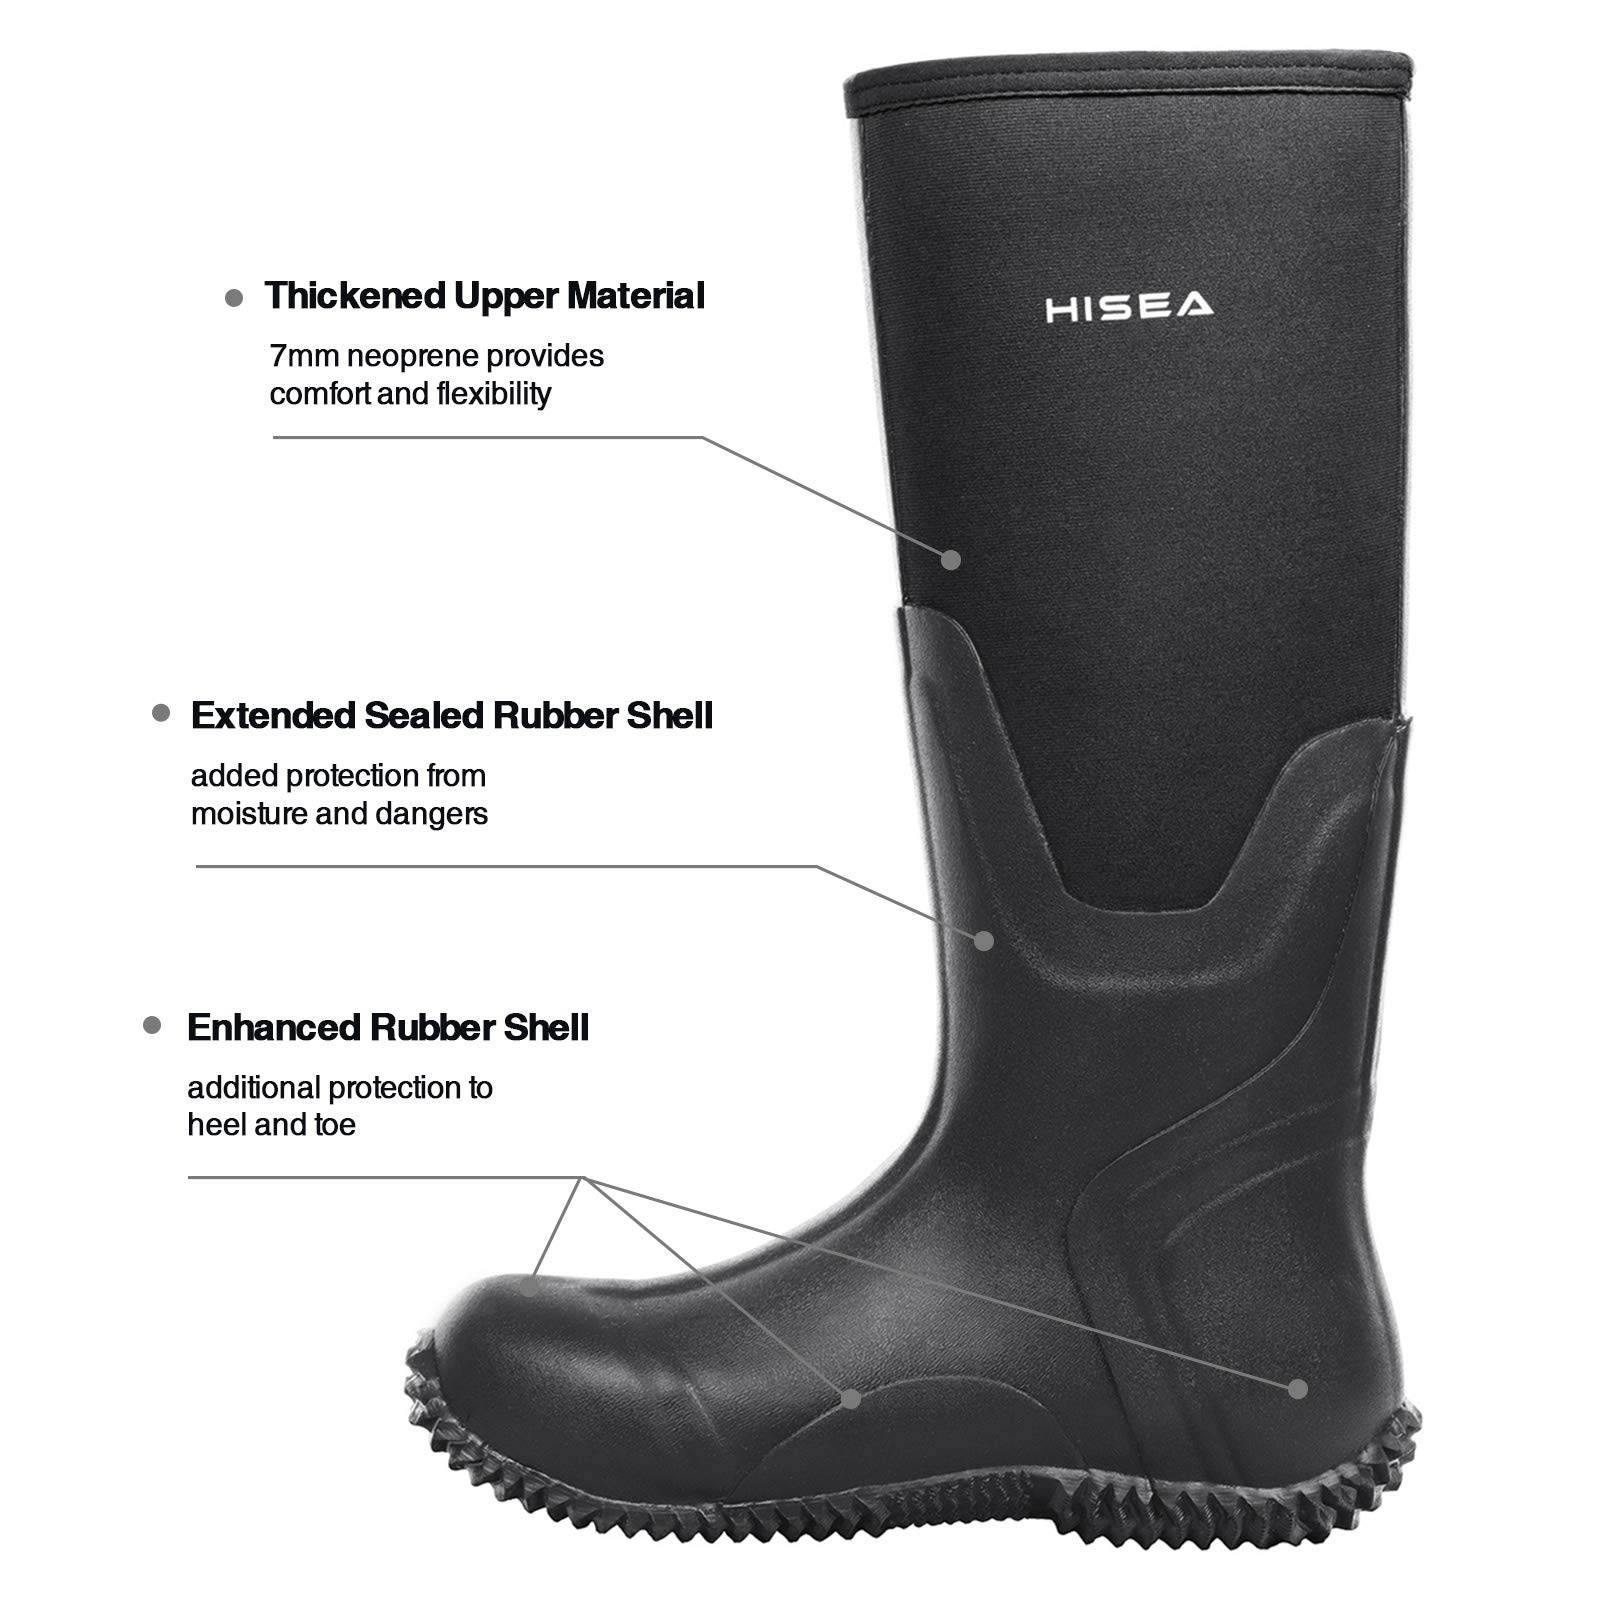 Hisea Mens Insulated Rubber Neoprene Boots Waterproof Durable Insulated Outdoor Winter Snow Rain Boots Hunting Arctic Boot Black Size 6 by Hisea (Image #3)